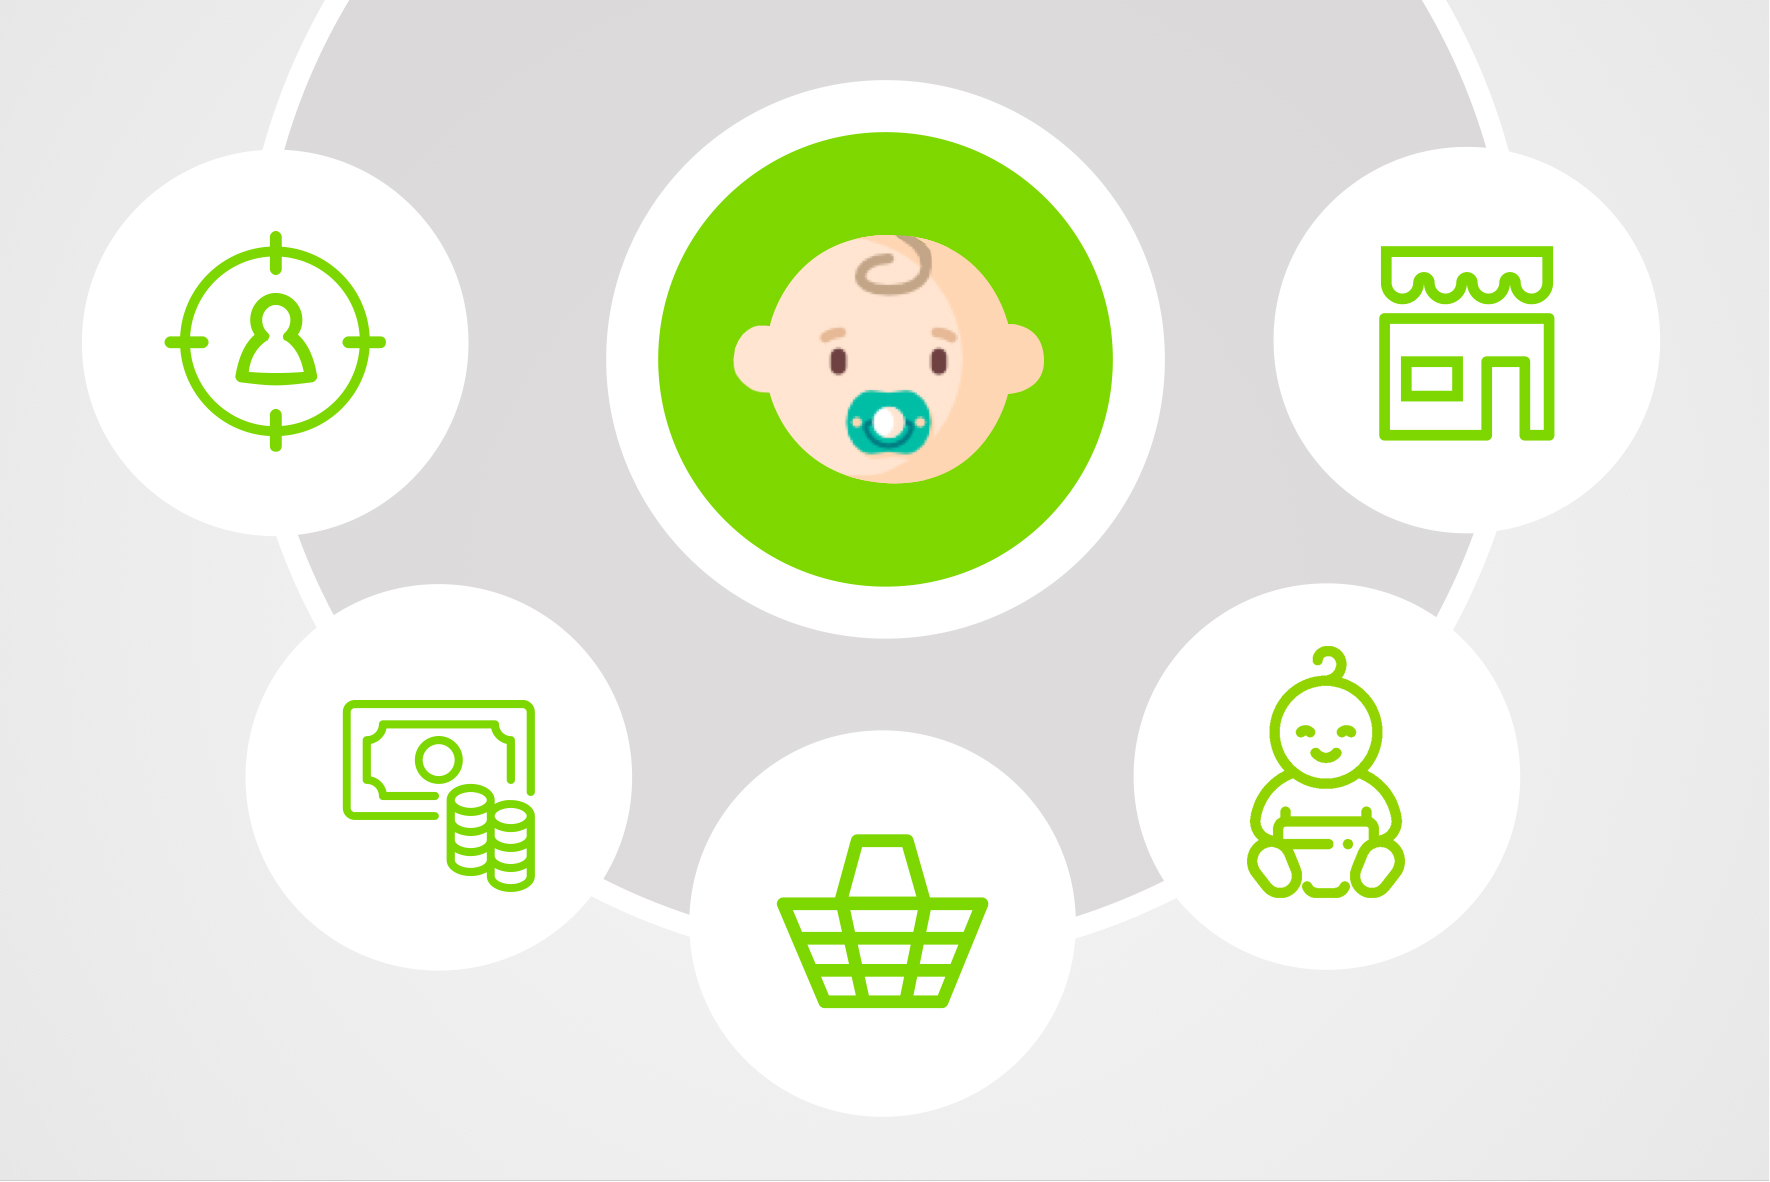 5 Vital Points of Purchasing Behavior in Baby Journey